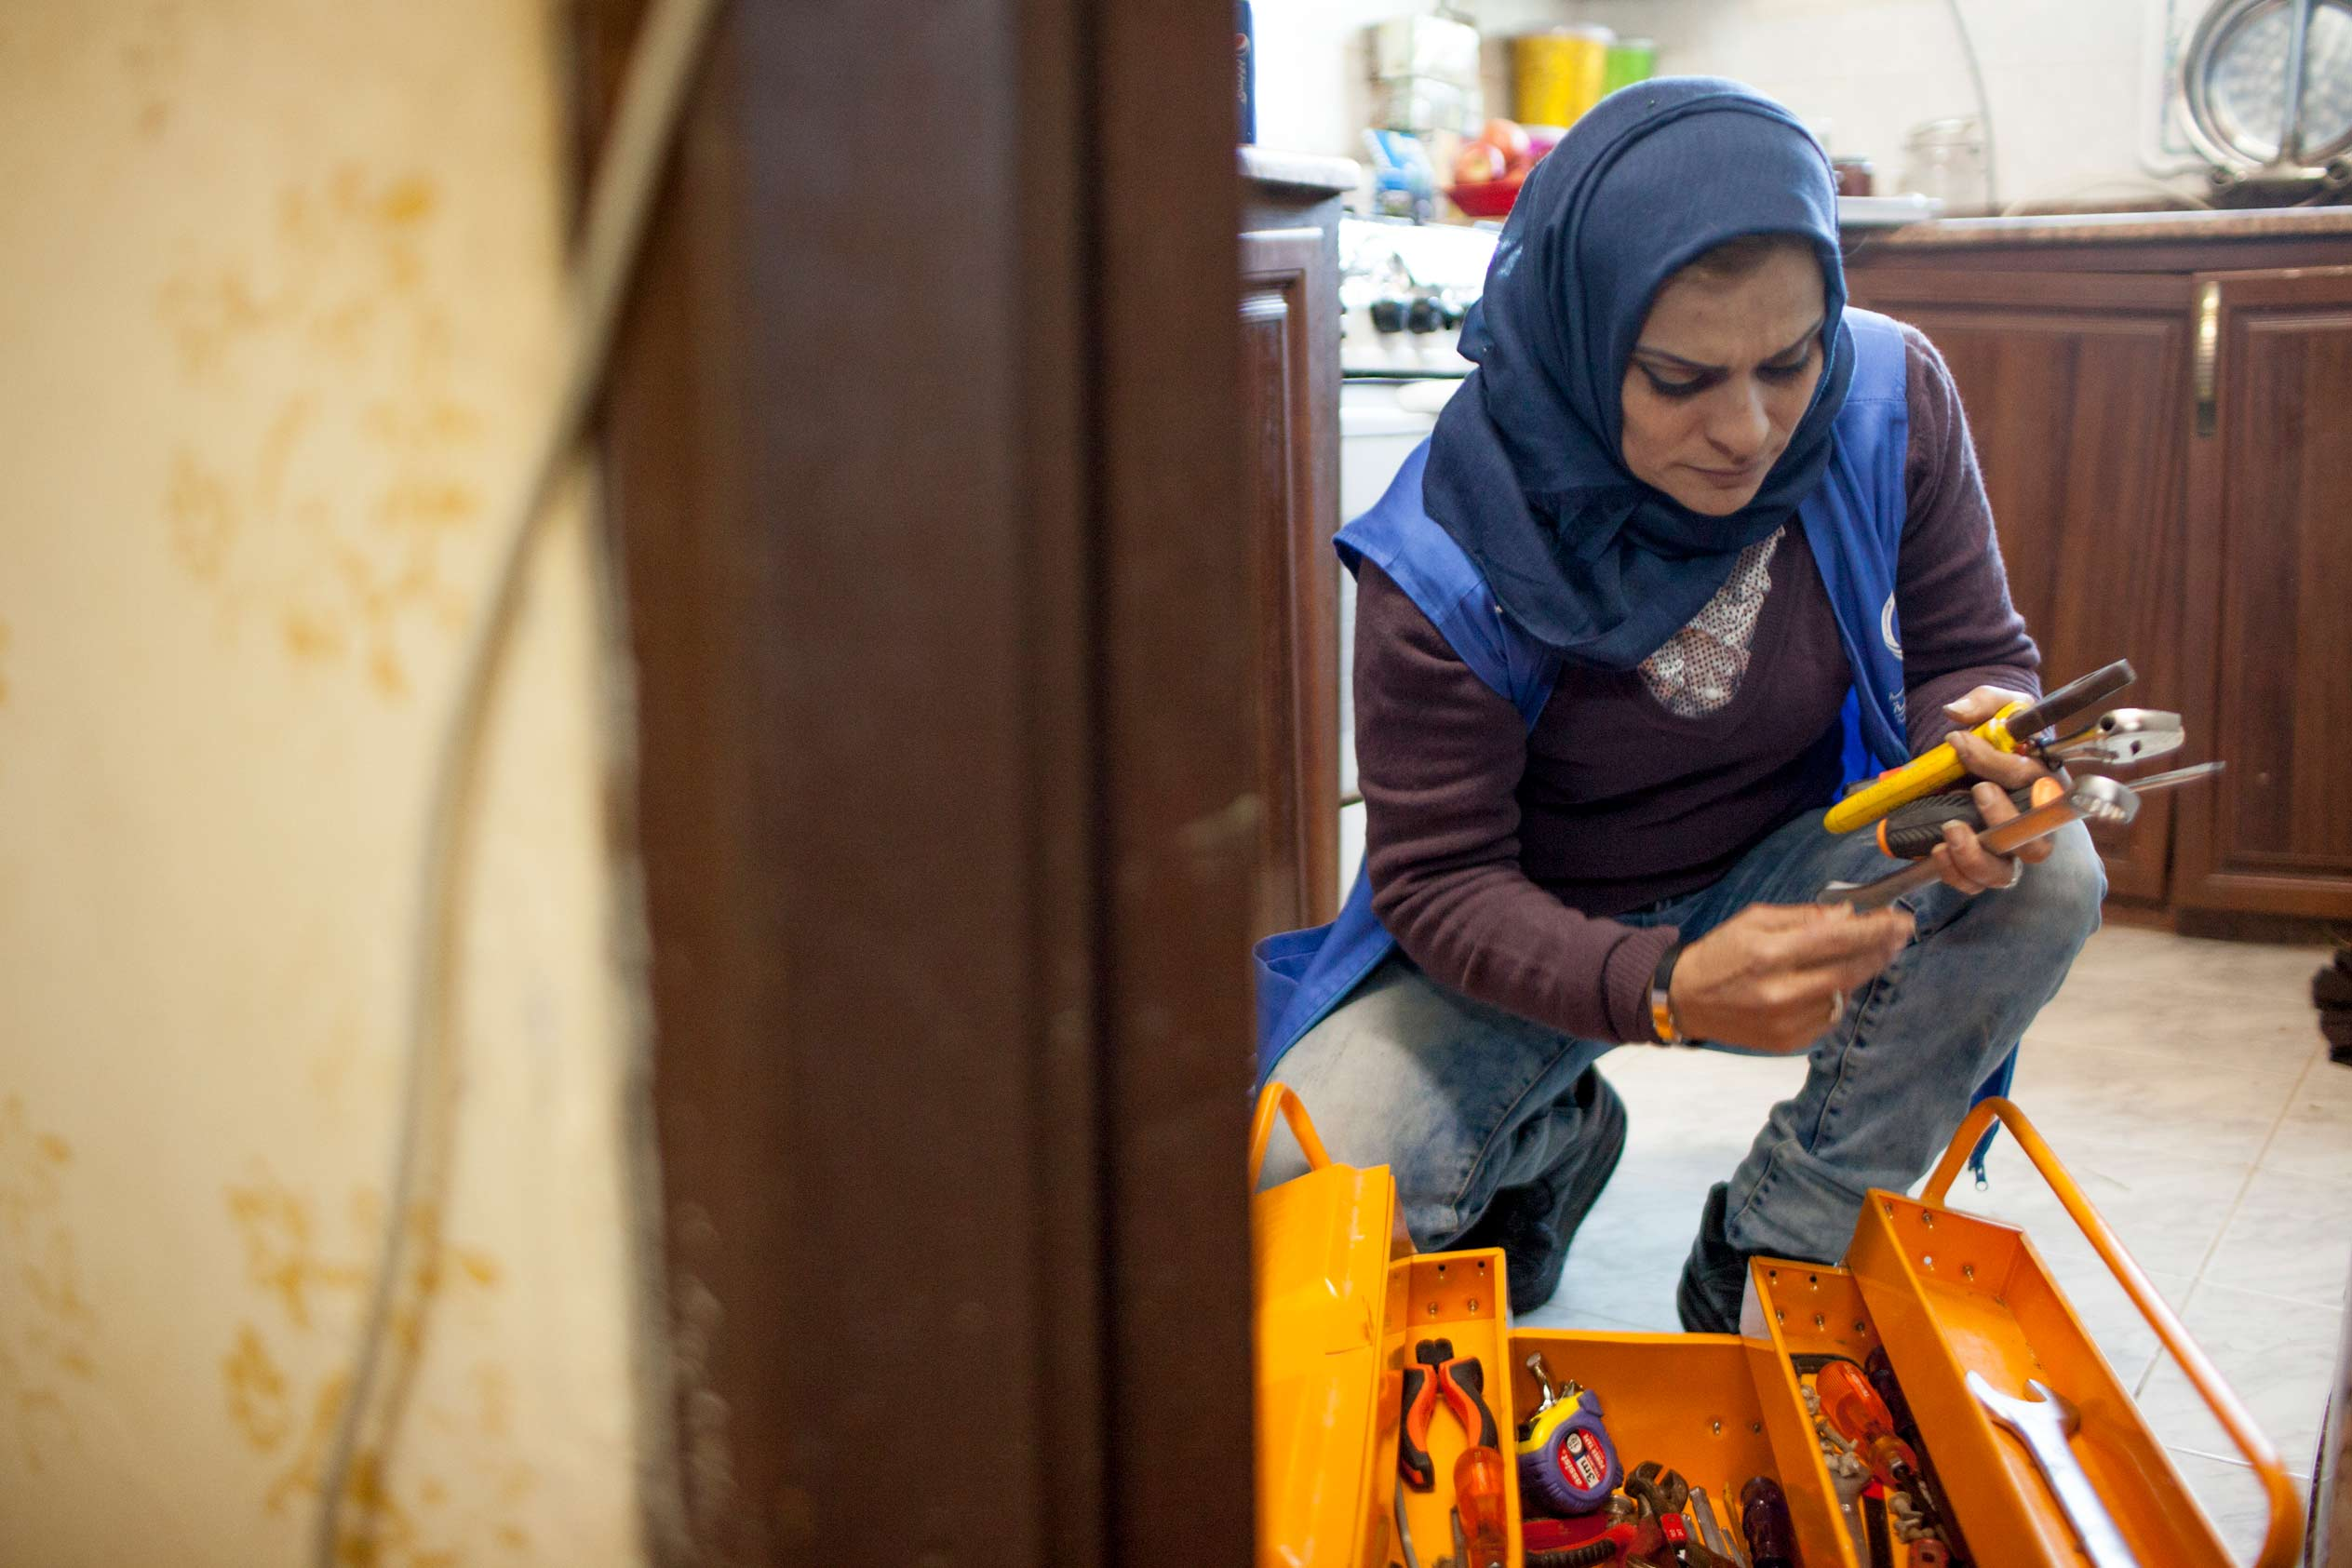 Photo: Ra'eda, pictured with her toolbox in a kitchen in Zarqa, Jordan, is one of 30 women who received training to become plumbers through a project that taught women how to effectively manage limited water resources in Zarqa, Jordan as part of MCC's Jordan Compact.